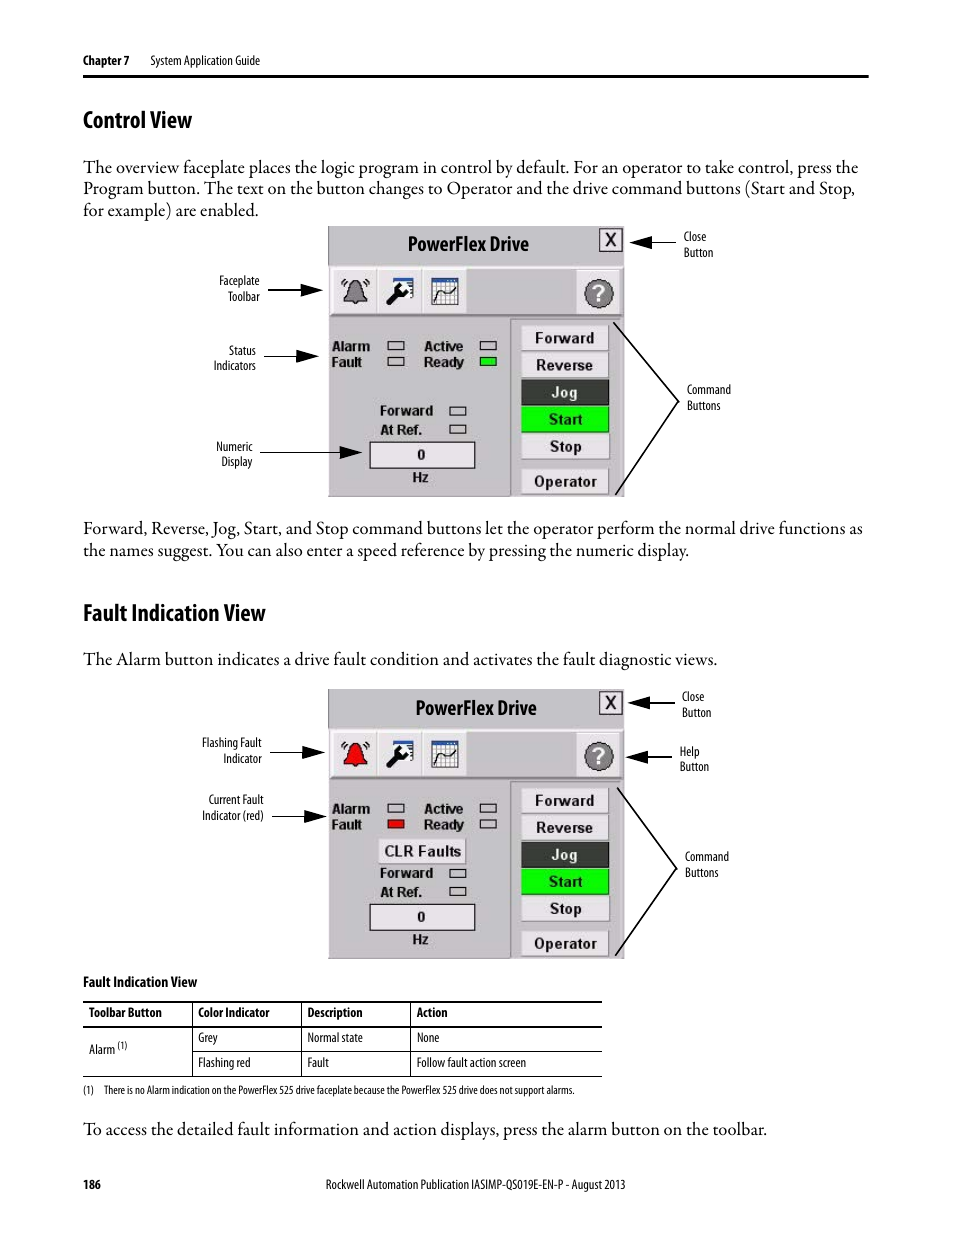 Control view, Fault indication view, Control view fault